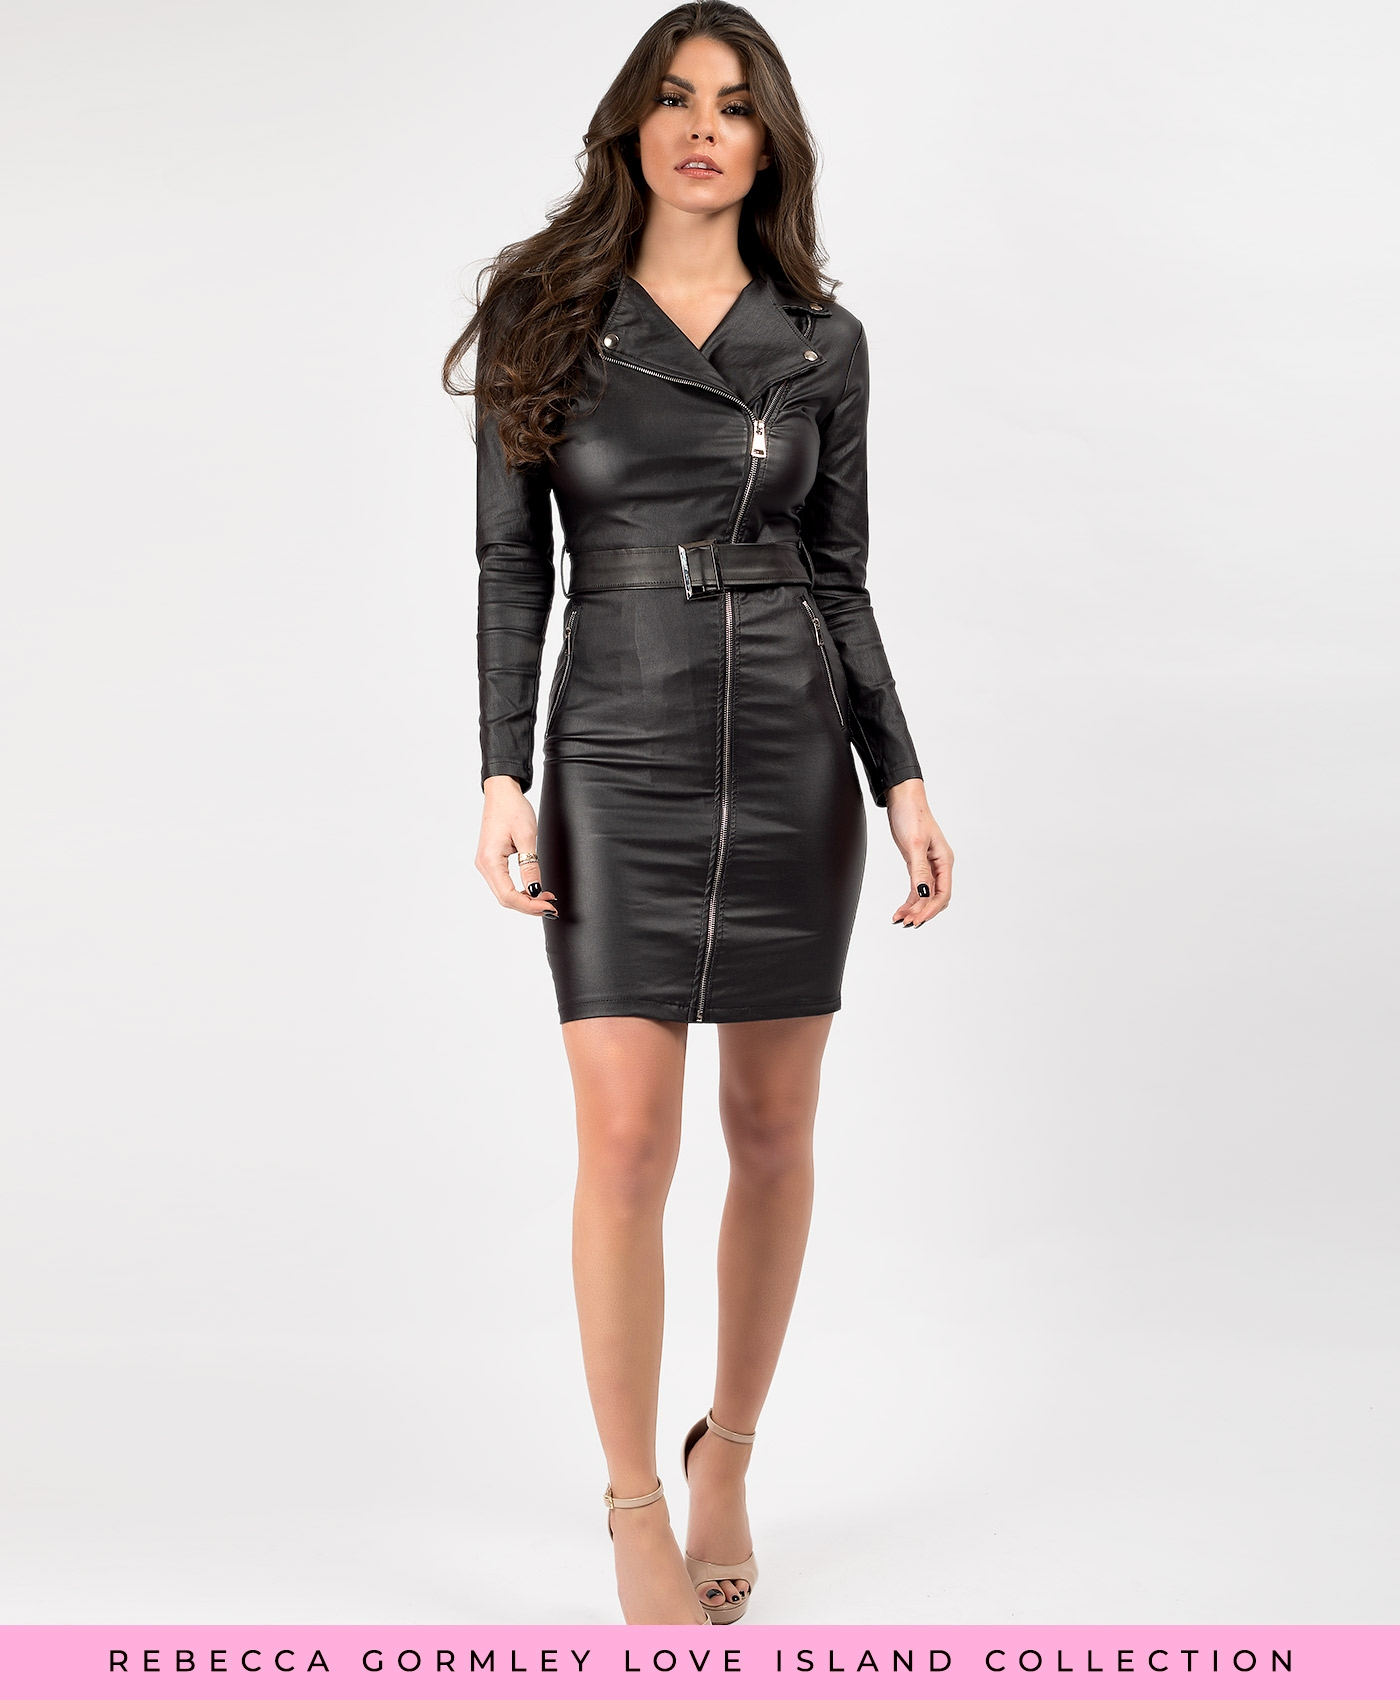 Black-PU-PVC-Faux-Leather-Zip-Up-Belted-Biker-Jacket-Dress-1